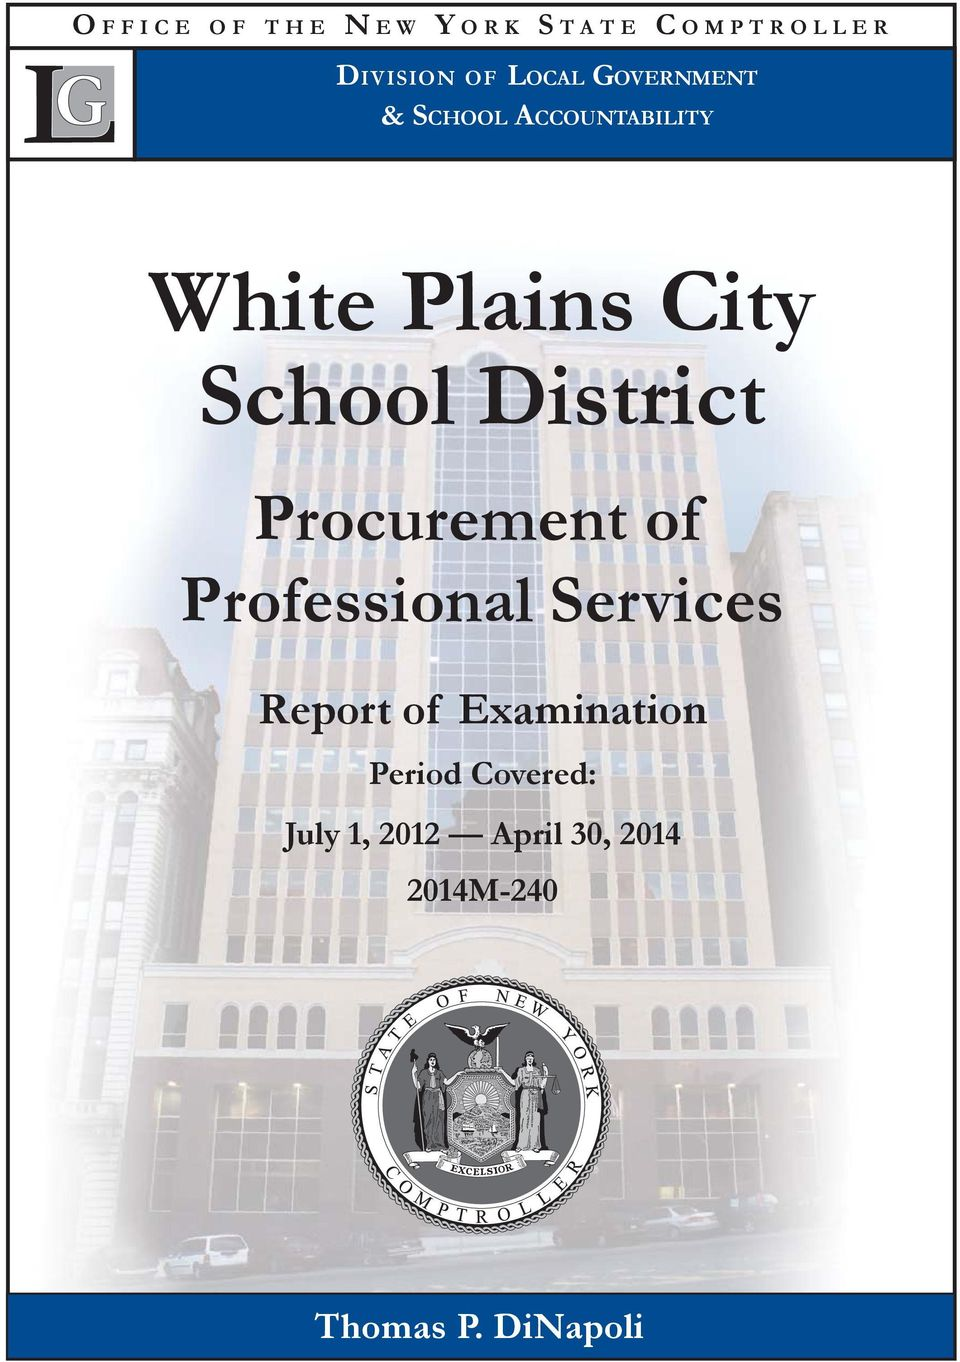 District Procurement of Professional Services Report of